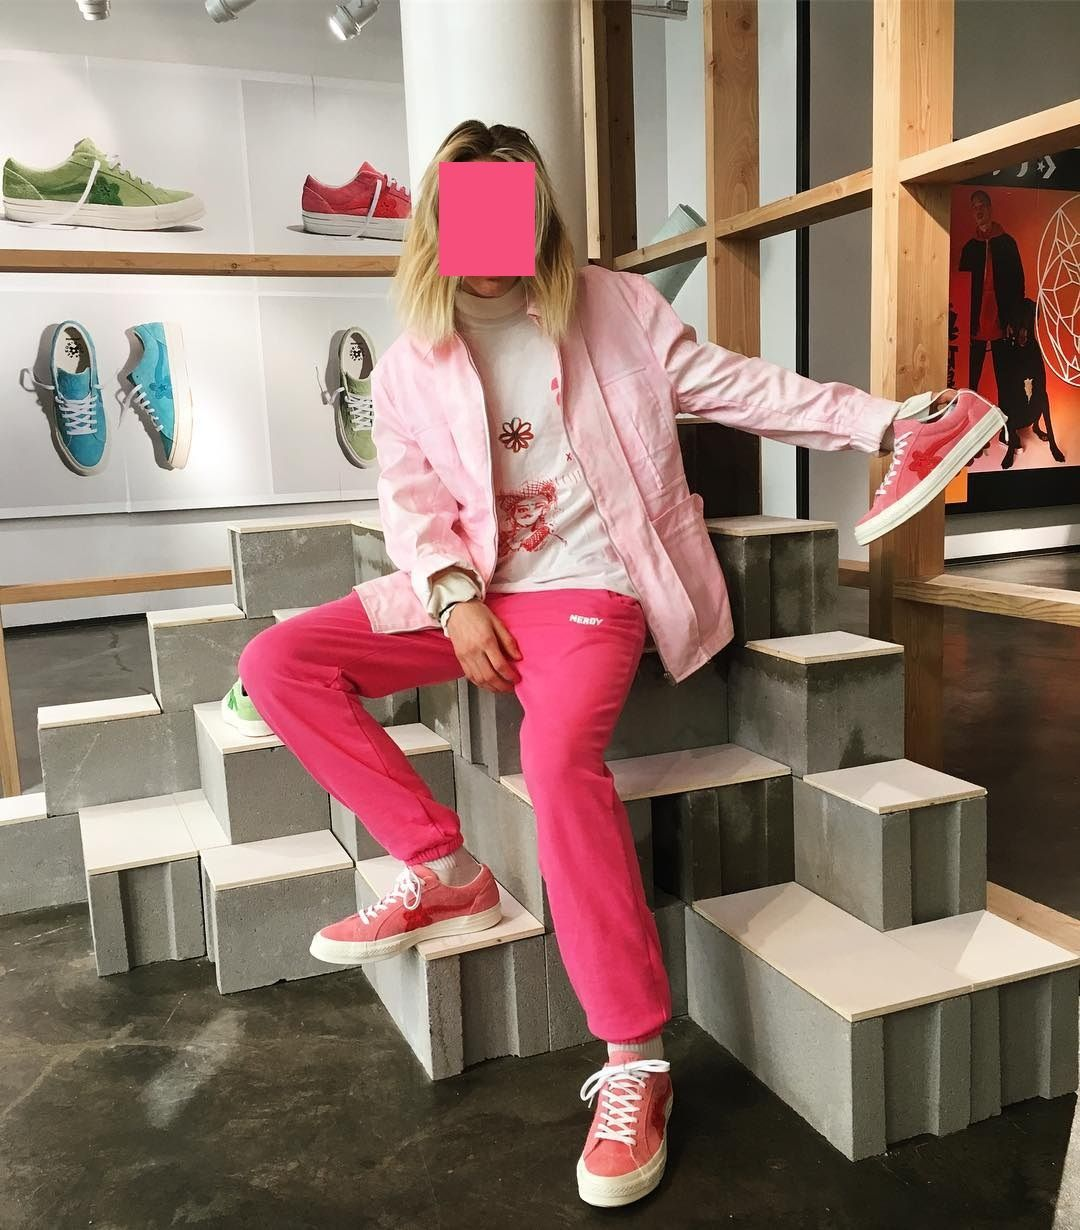 Full Pink Outfit X Tyler The Creator Converse Golf Le Fleur Outfits Pink Shoes Outfit Urban Fashion